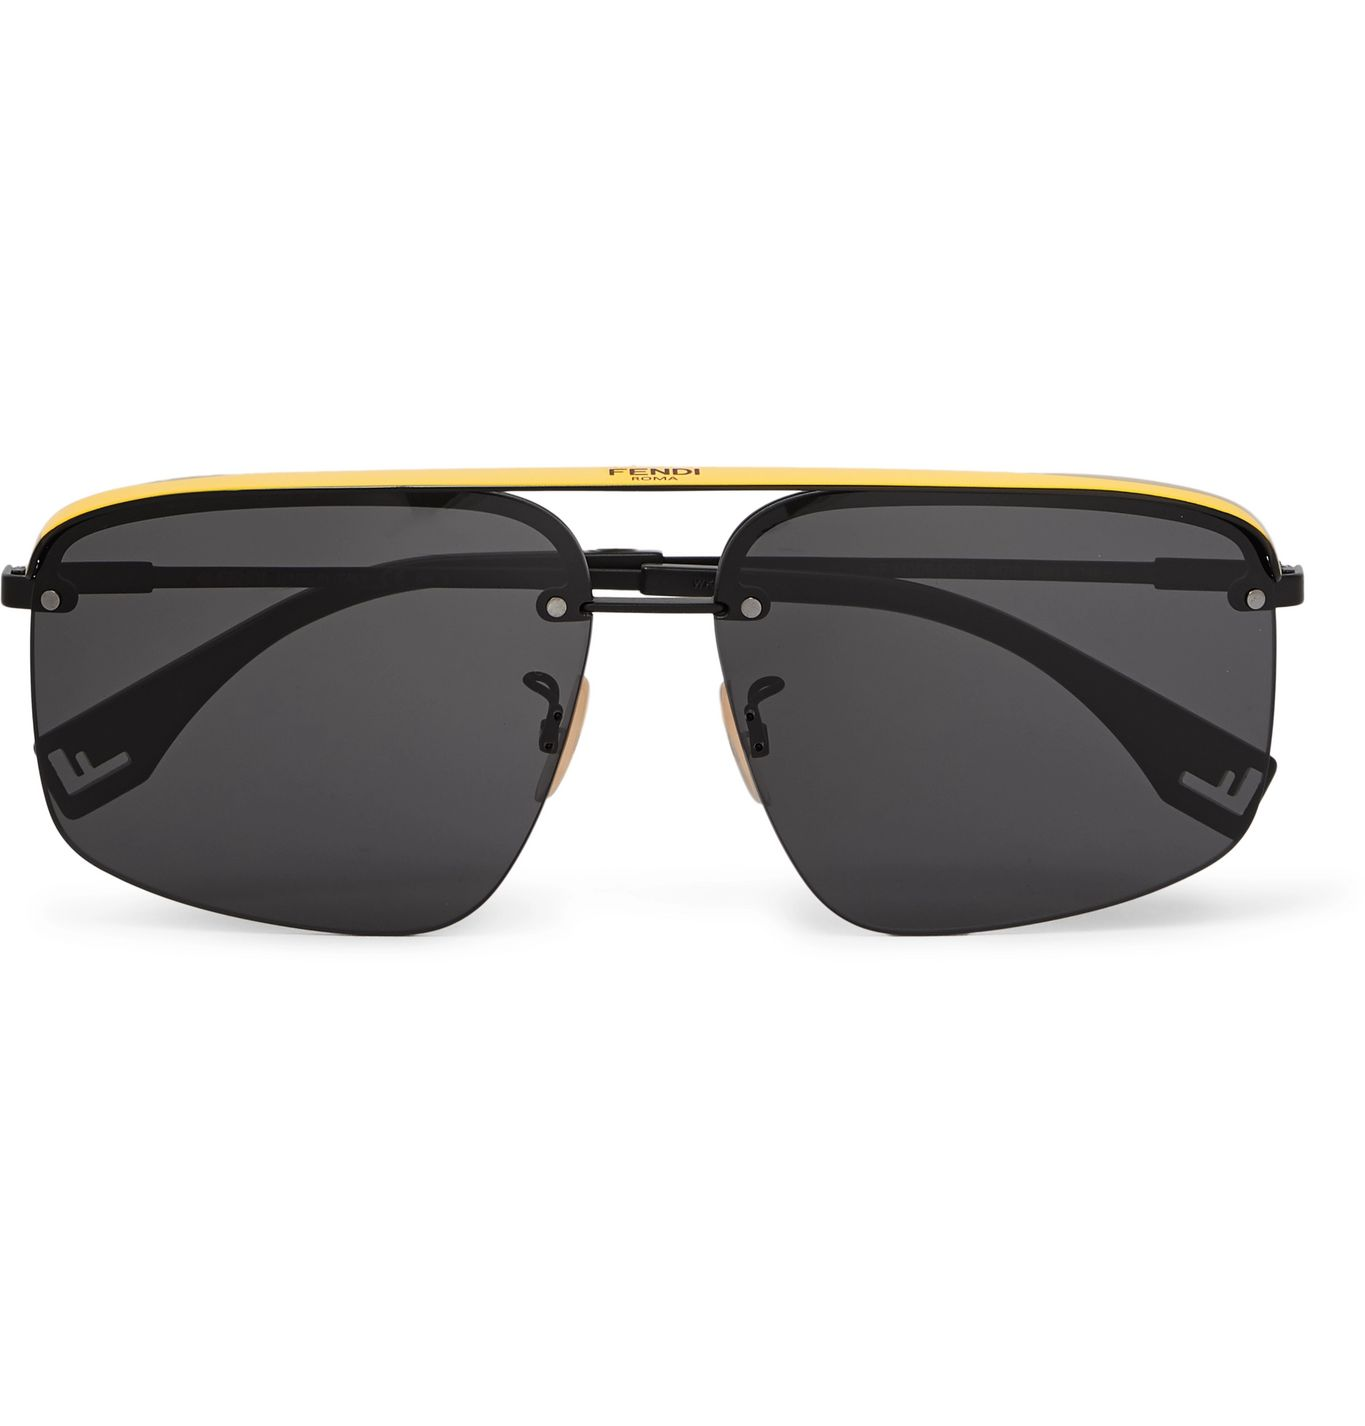 Aviator-Style Metal and Acetate Sunglasses